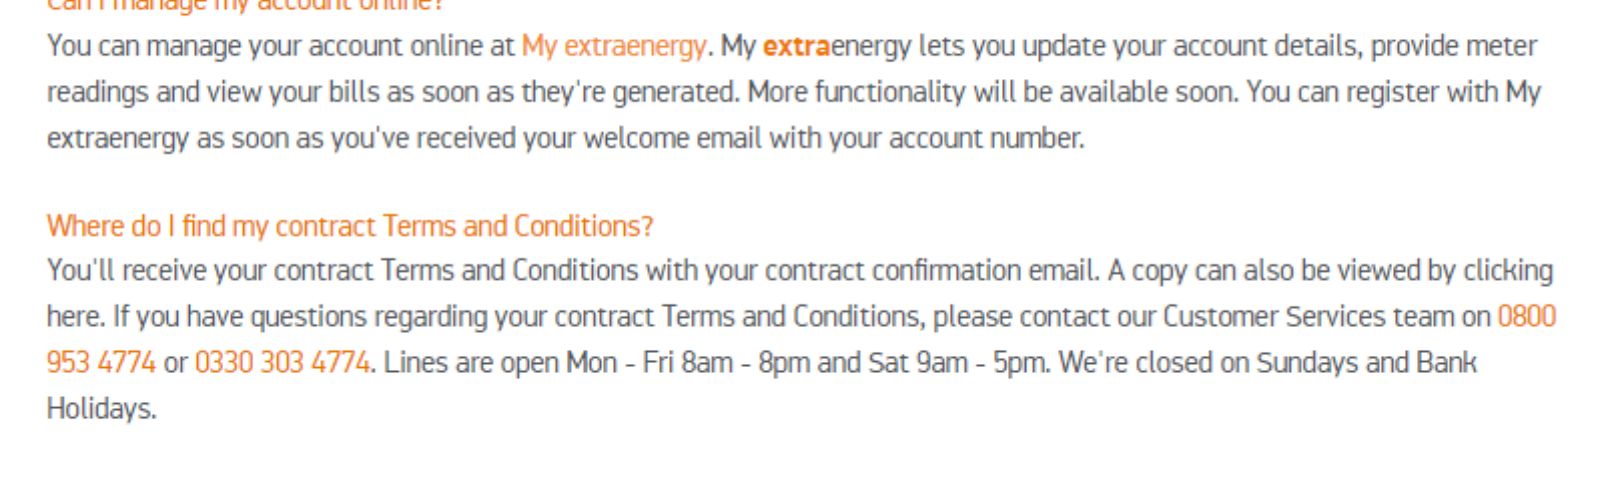 Extra Energy Contact